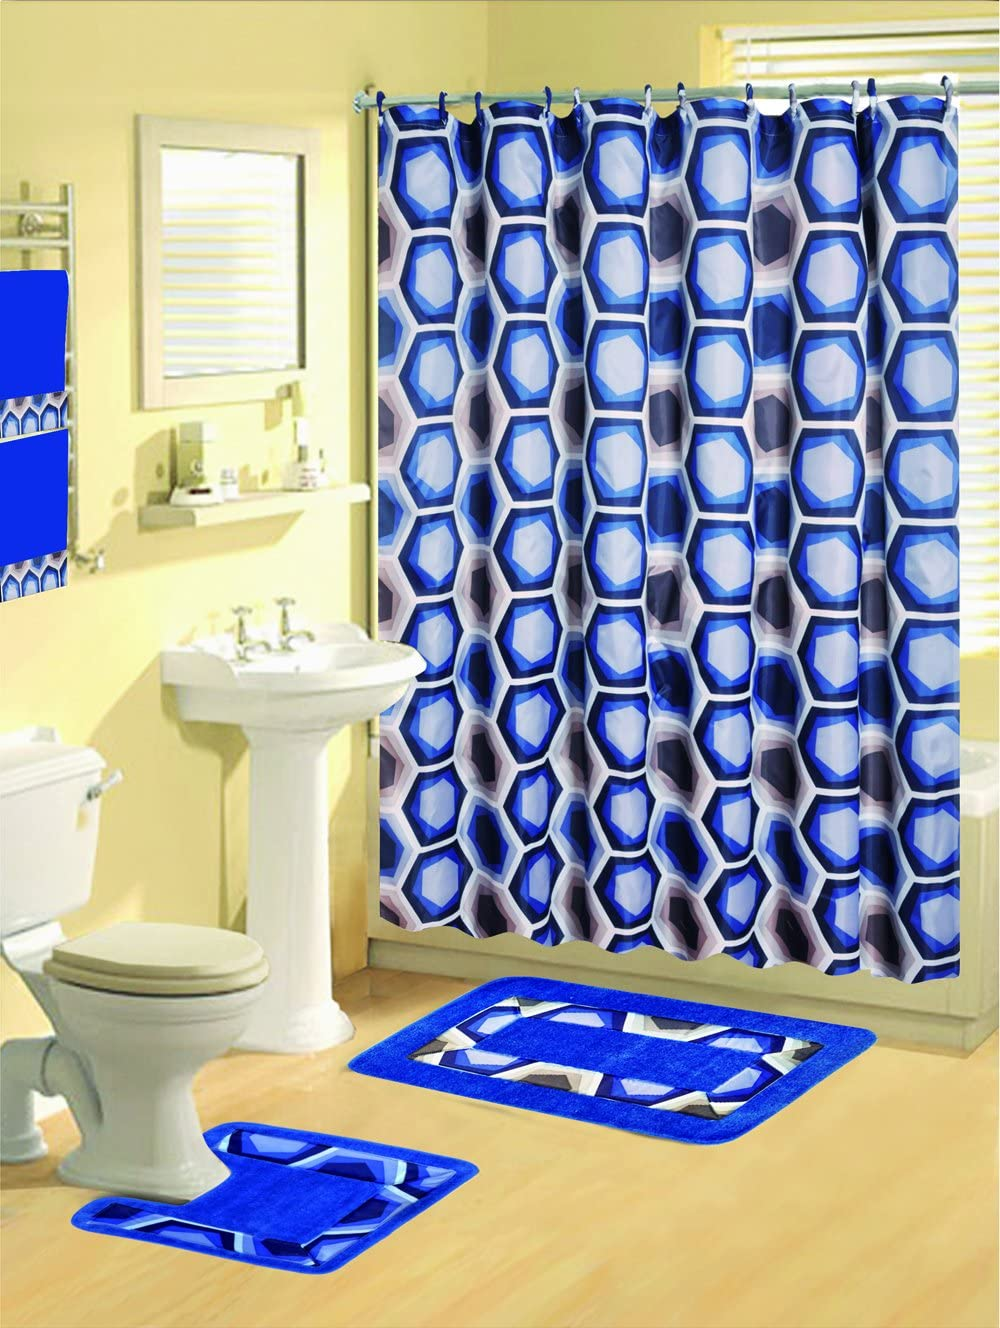 Home Dynamix Boutique Deluxe: Shower Curtain and Bath Rug Set: BOU21 Honeycomb Blue-Gray